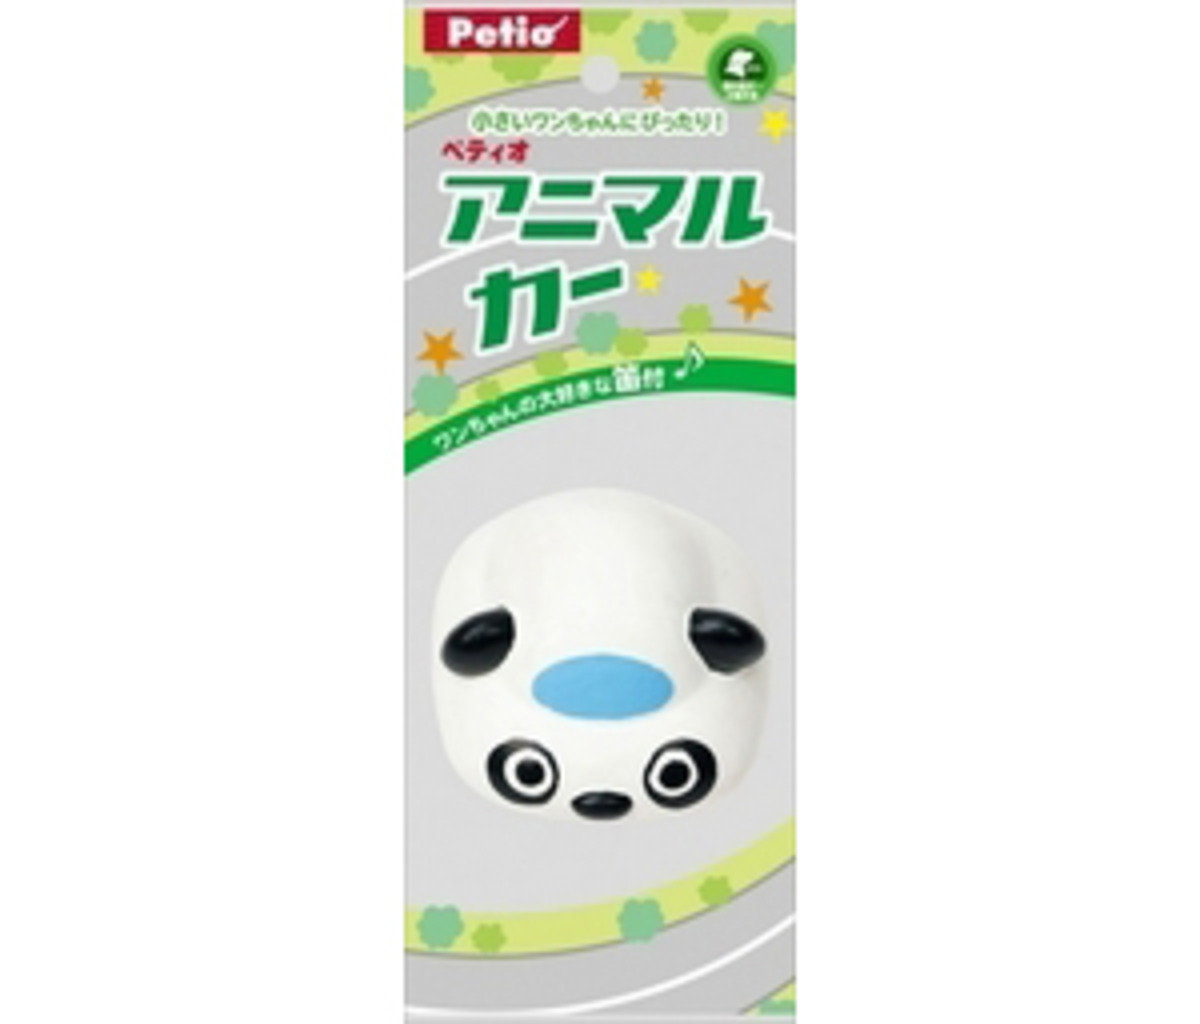 PETIO Sound toys - Panda (23424) (Import from Japan)